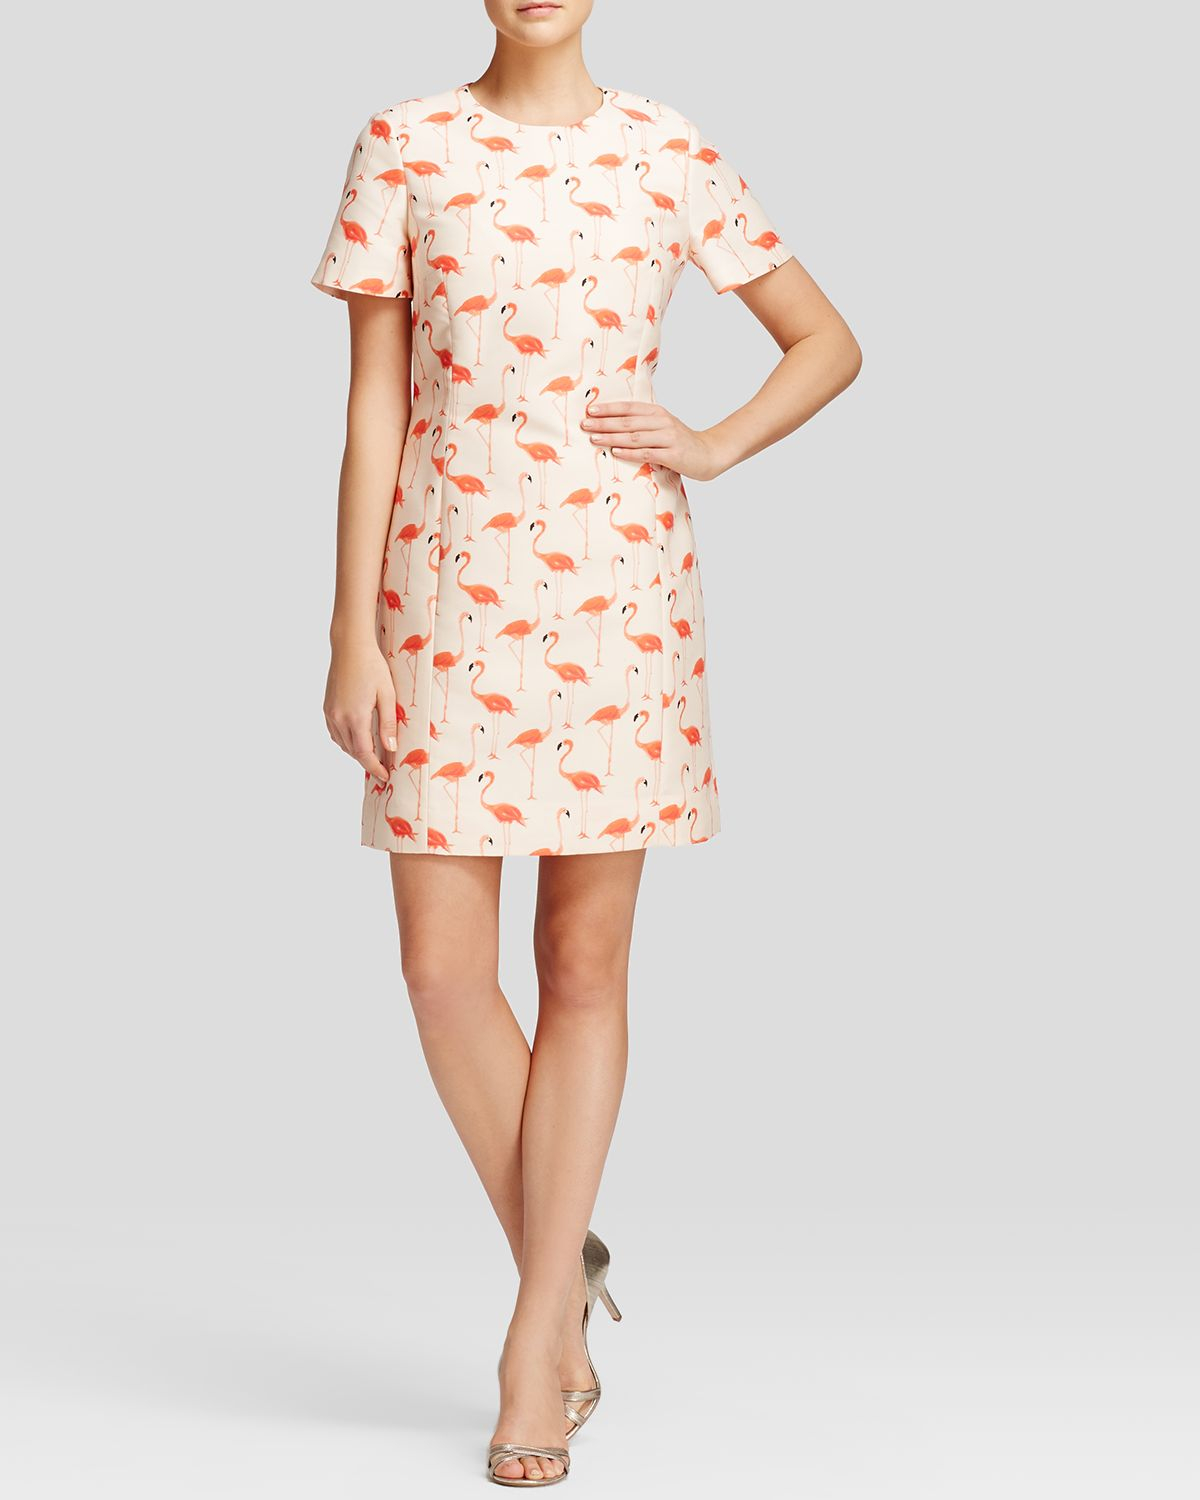 Kate spade new york Flamingo Print Sheath Dress | Lyst